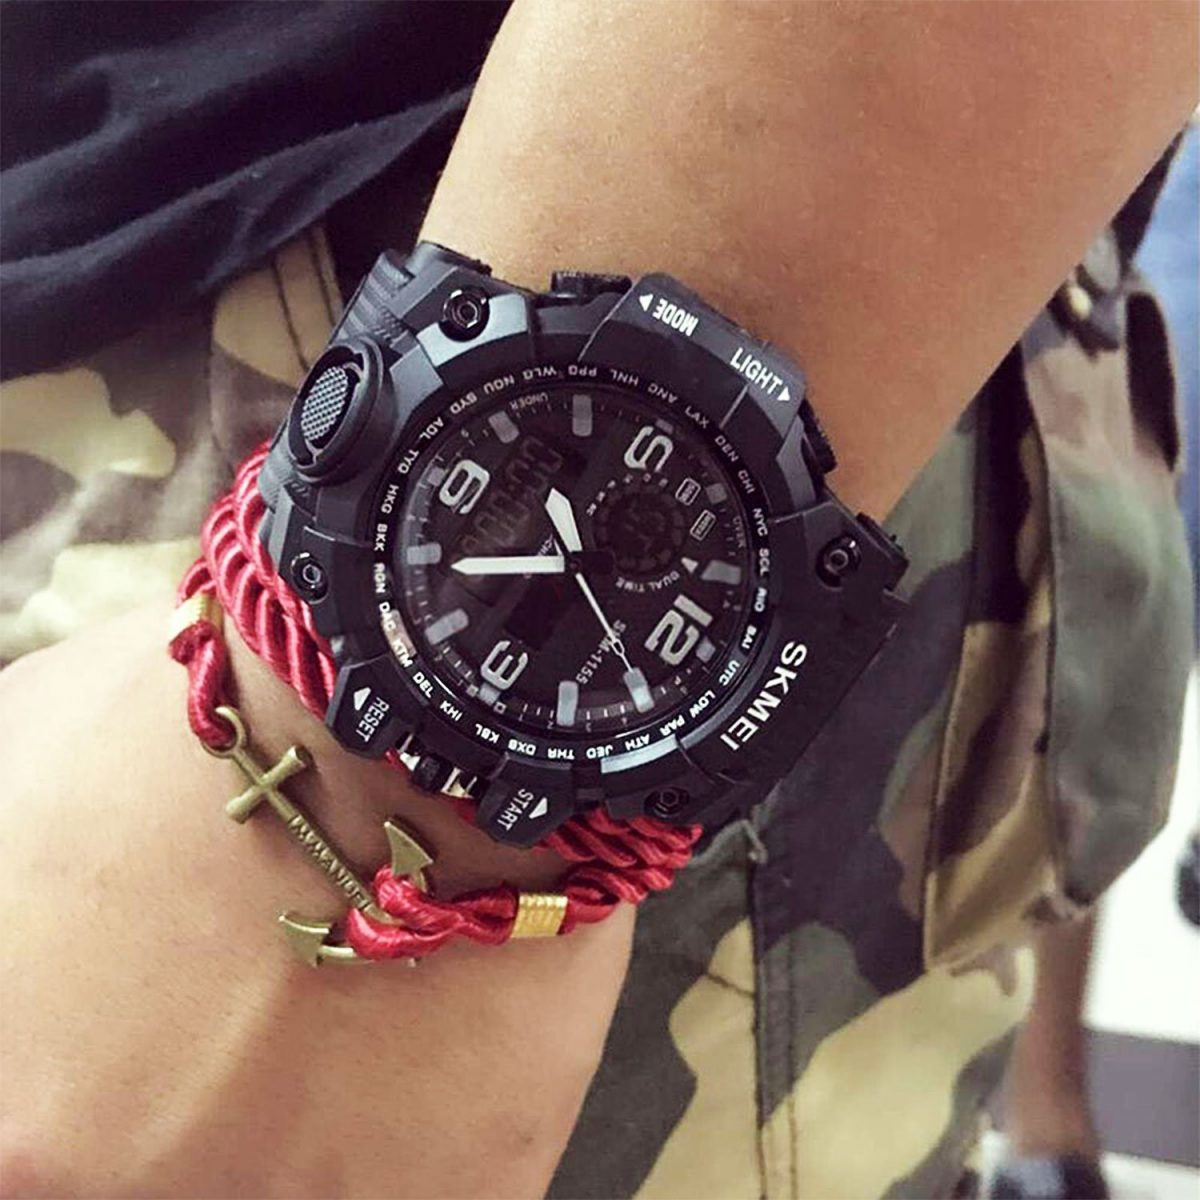 Multi-Functional Men's Sports Watches: Never Go Out Of Date!